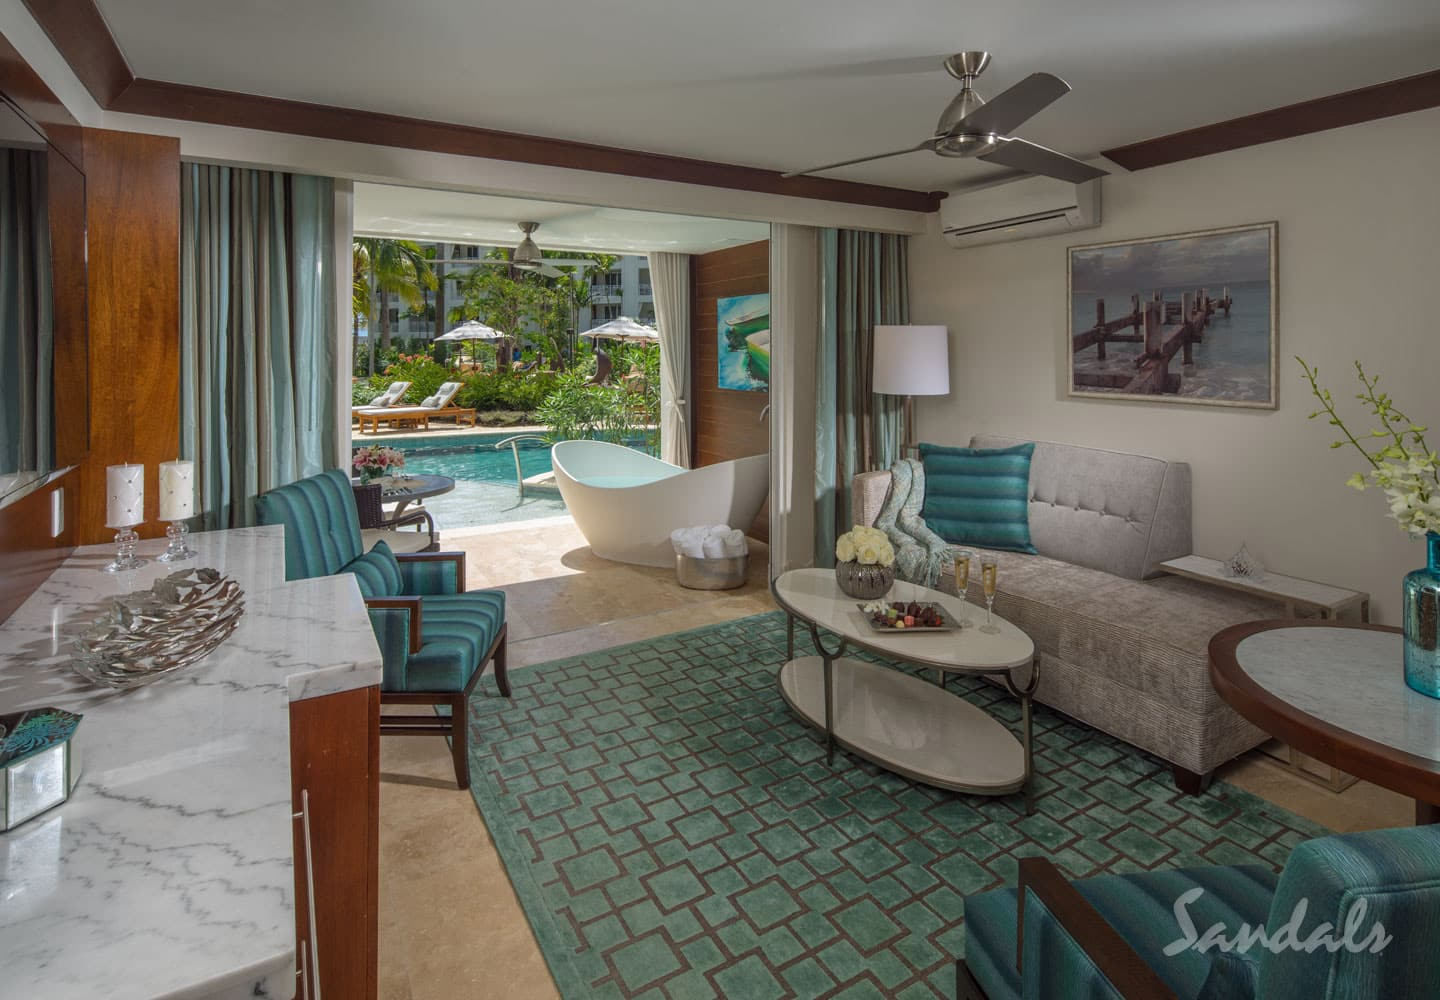 private suite at the Sandals Barbados resort, adults only all inclusive resort, offered by Southern Travel Agency Augusta, GA, local travel agency near me